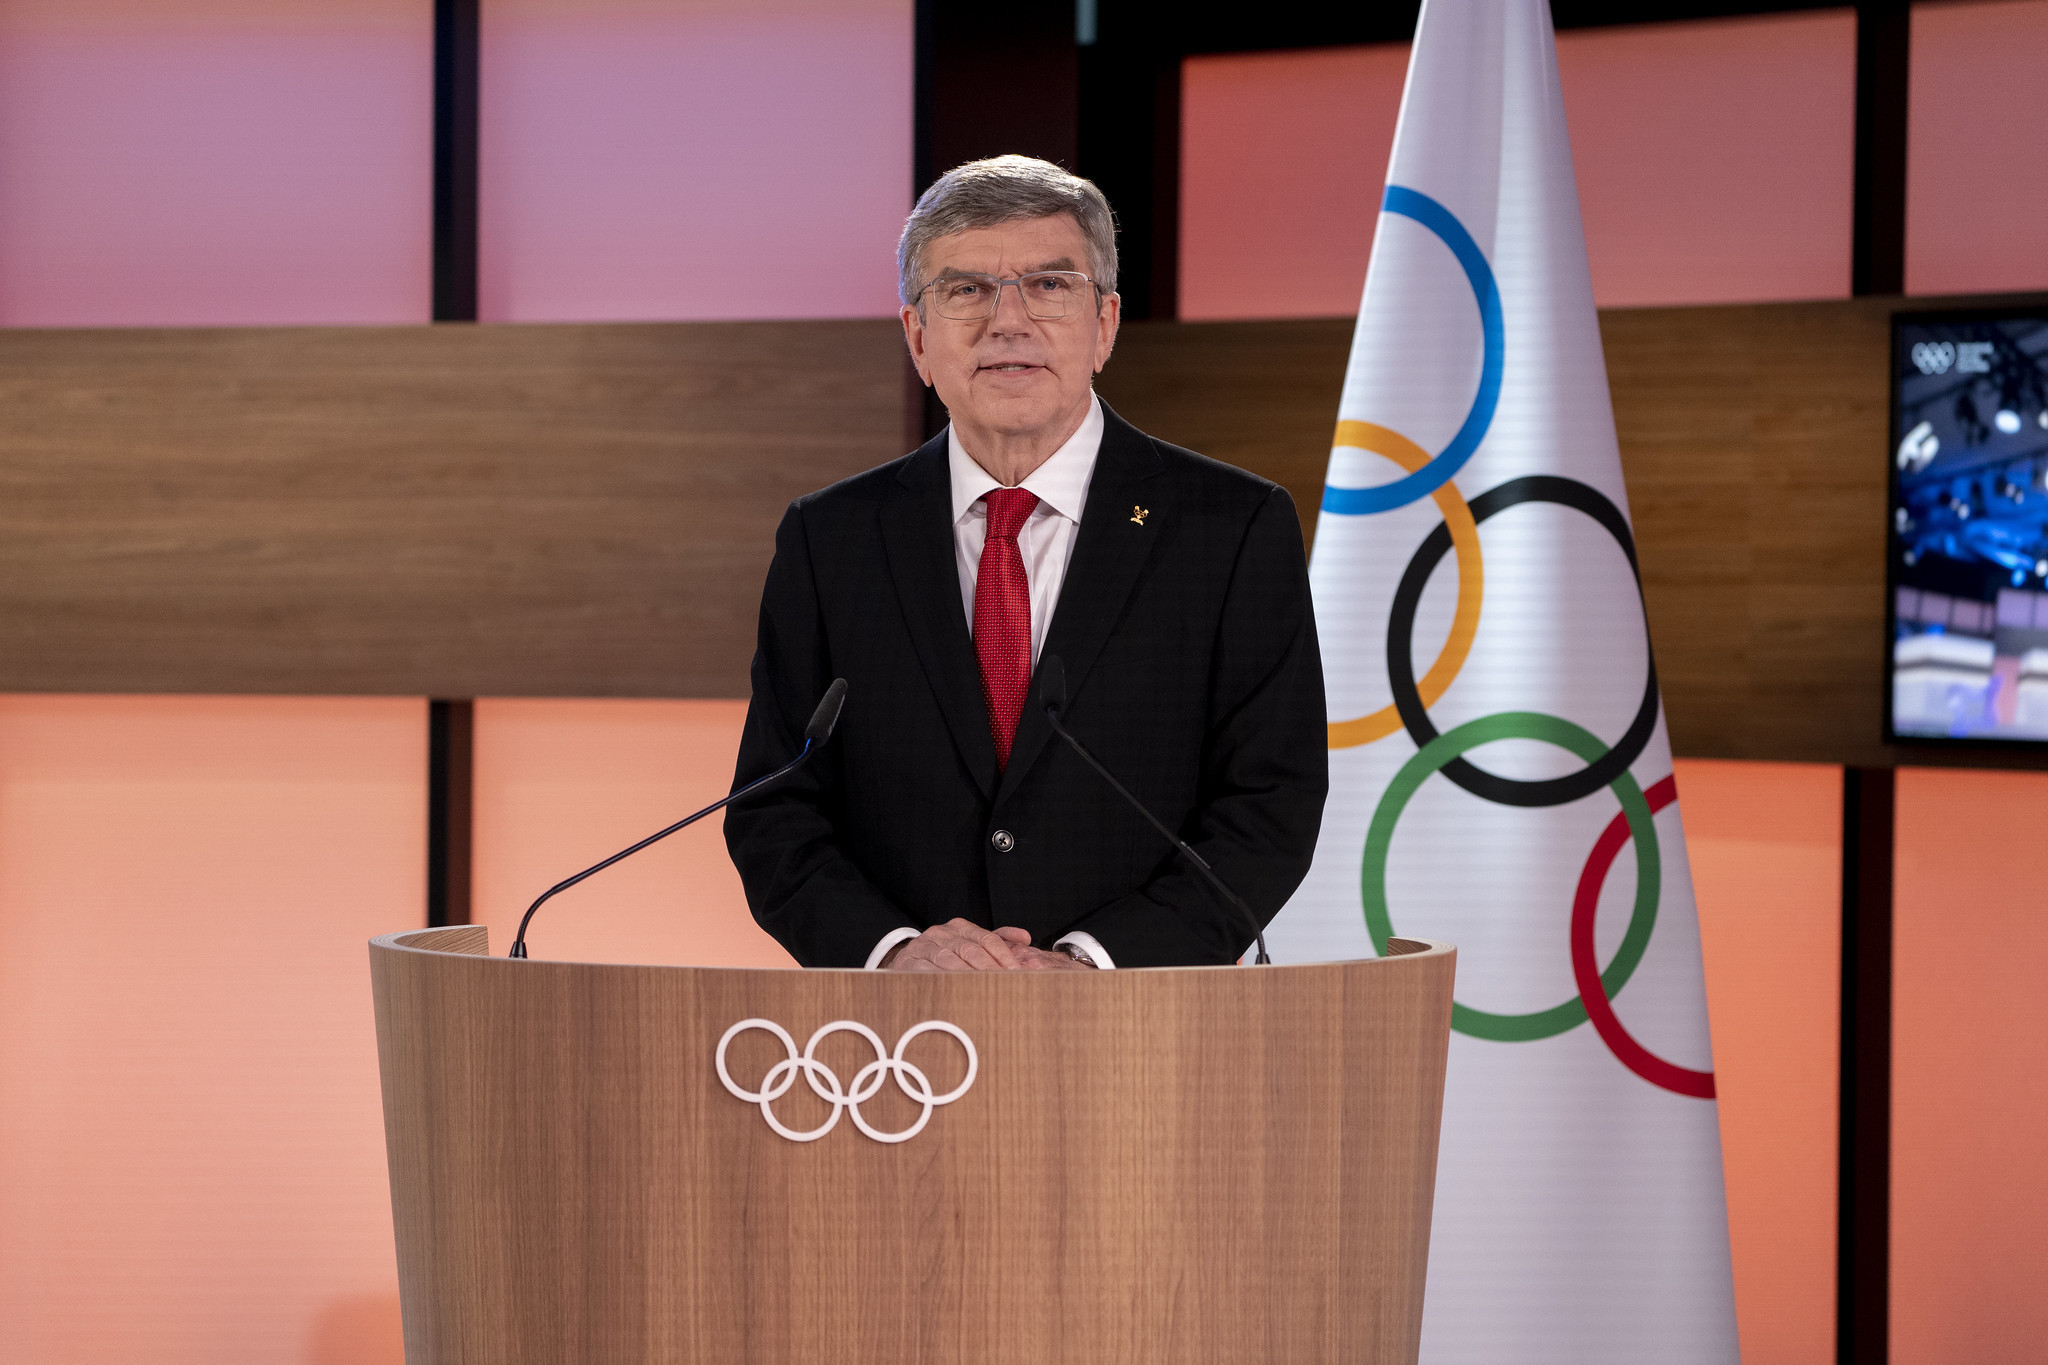 Thomas Bach has been re-elected President of the IOC ©IOC